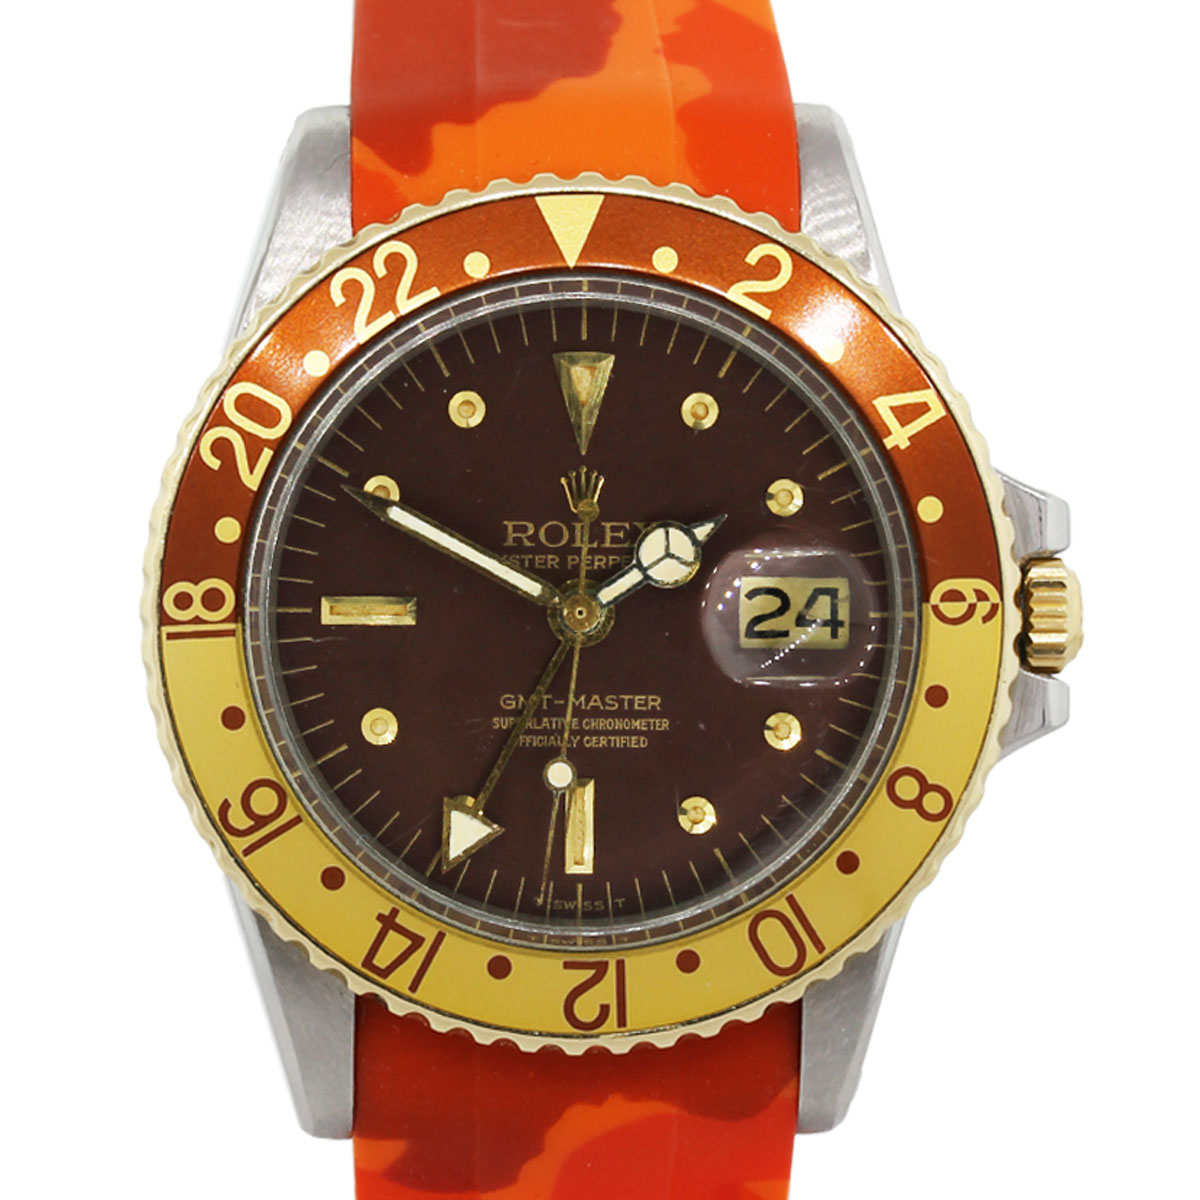 Rolex Rubber Rolex 1675 Gmt Root Beer Orange Camo Rubber Strap Stainless Steel Vintage Watch